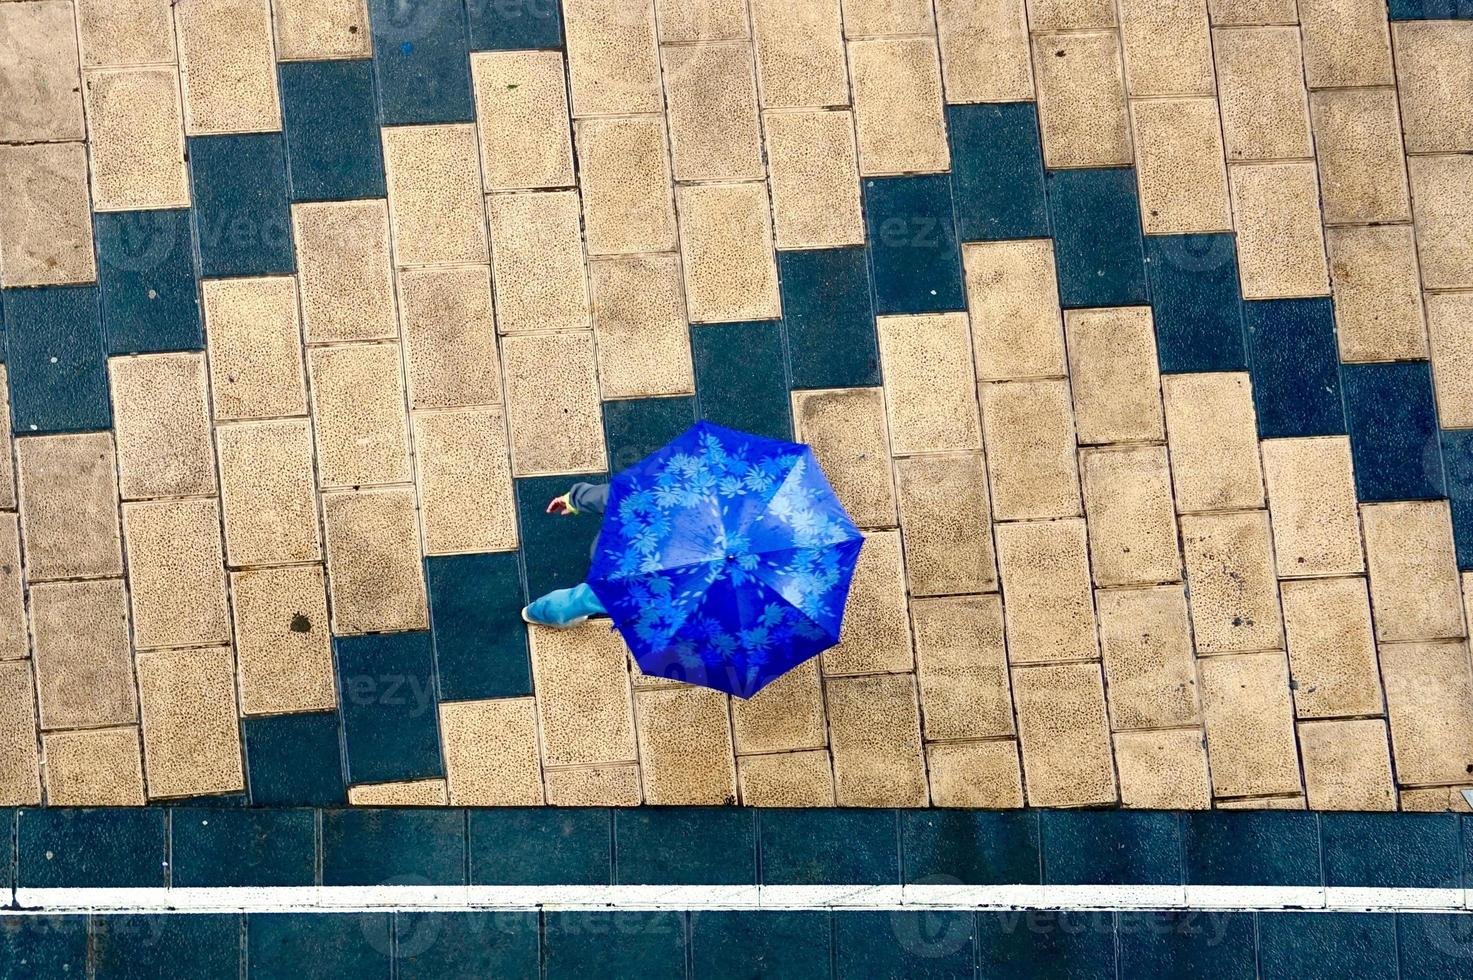 woman with an umbrella in rainy days photo